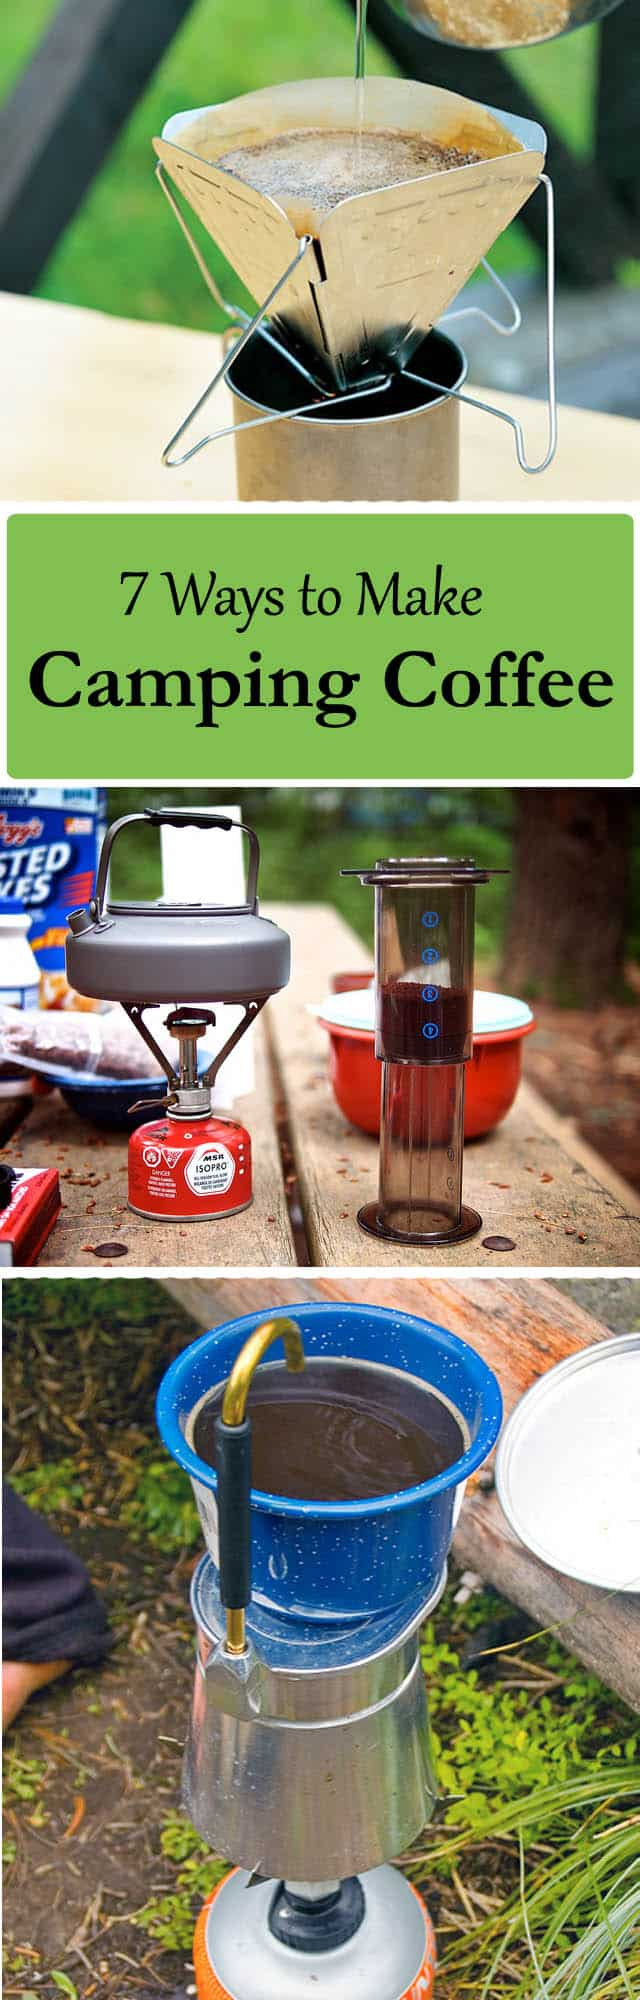 how to make camping coffee 7 ways